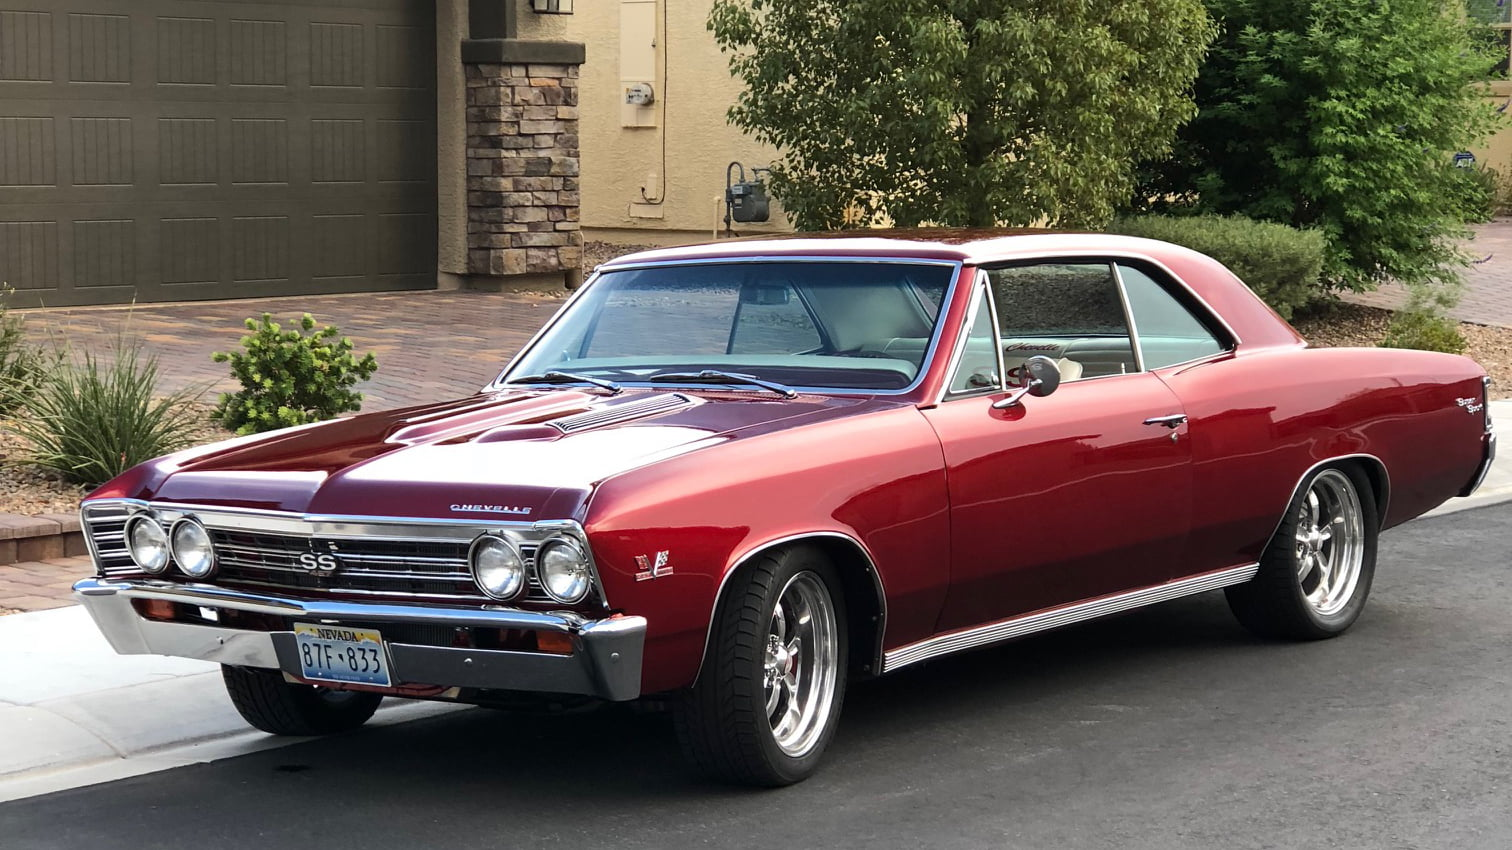 1967 Chevrolet Chevelle SS | Top Speed